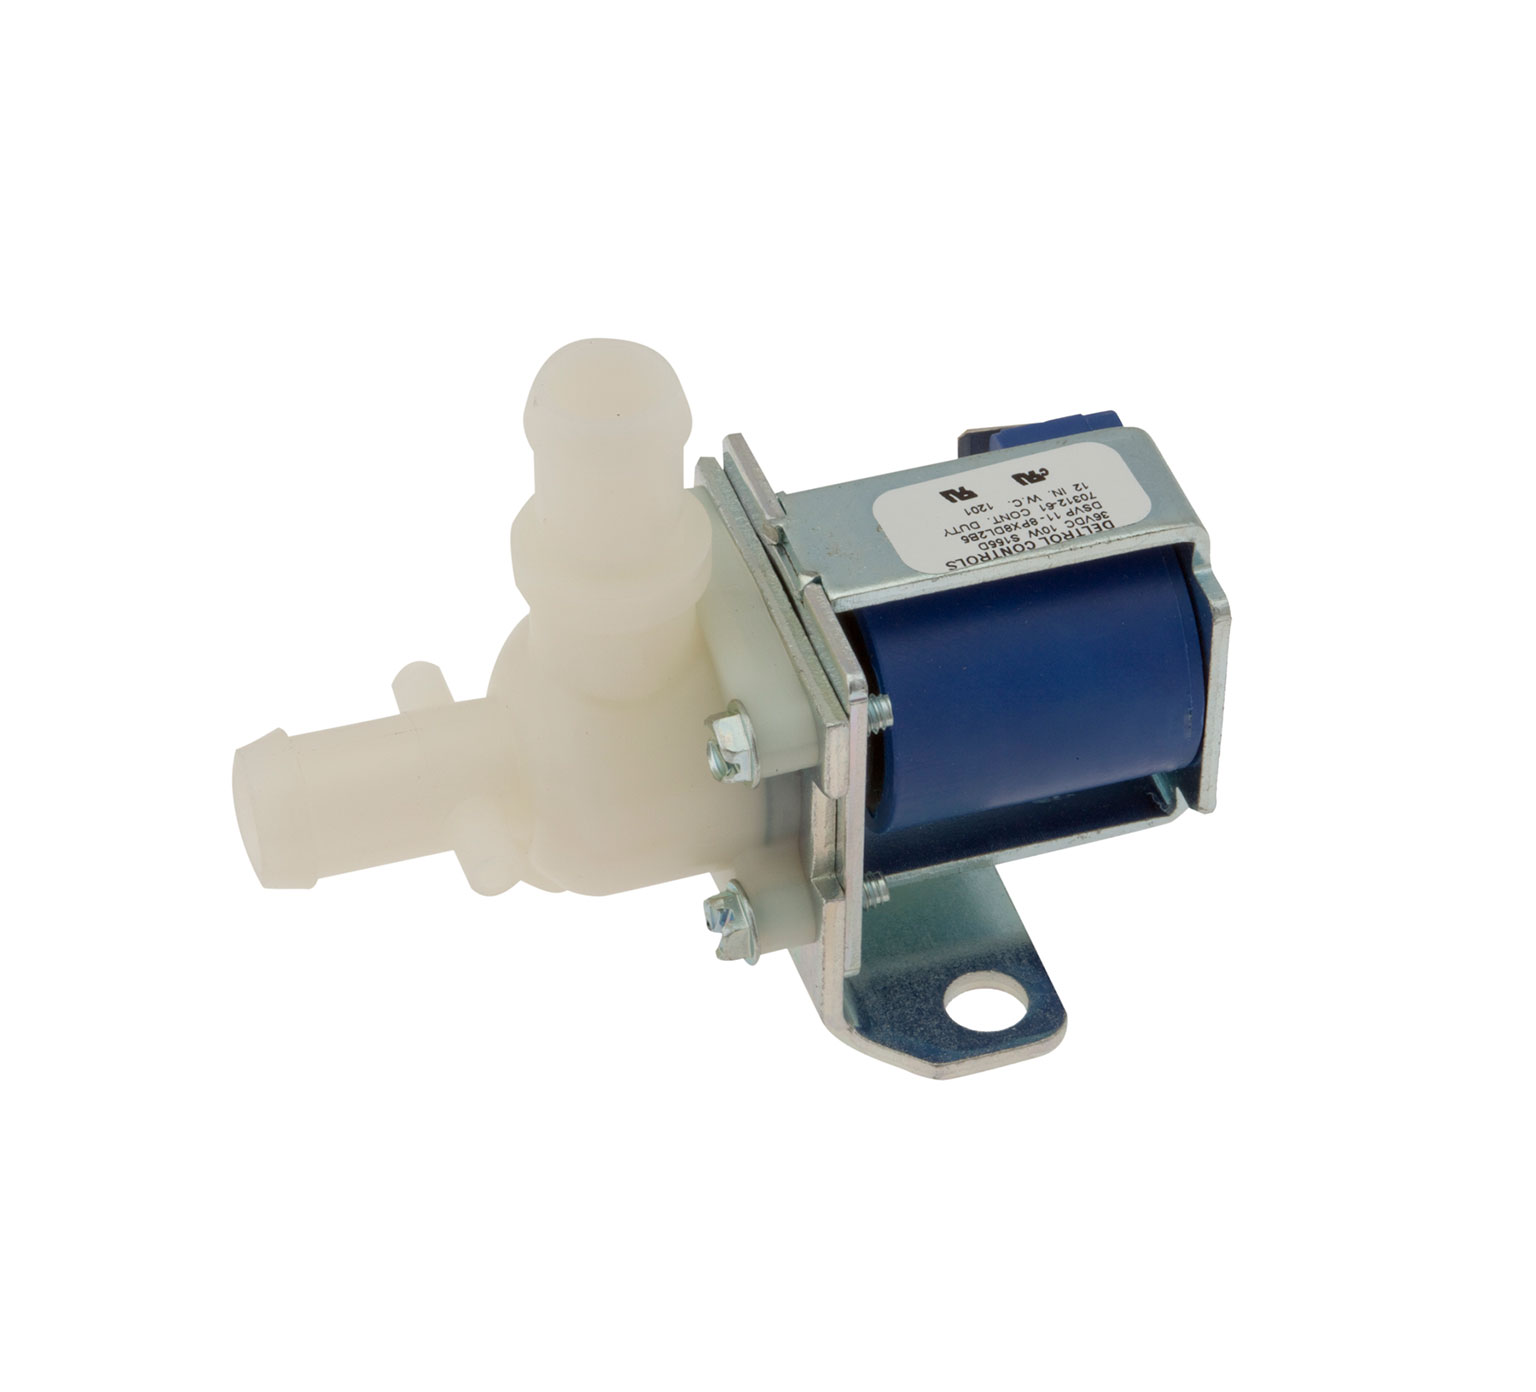 Solution Valve - 24 Volt Adjustable Replaces Tennant 1062385